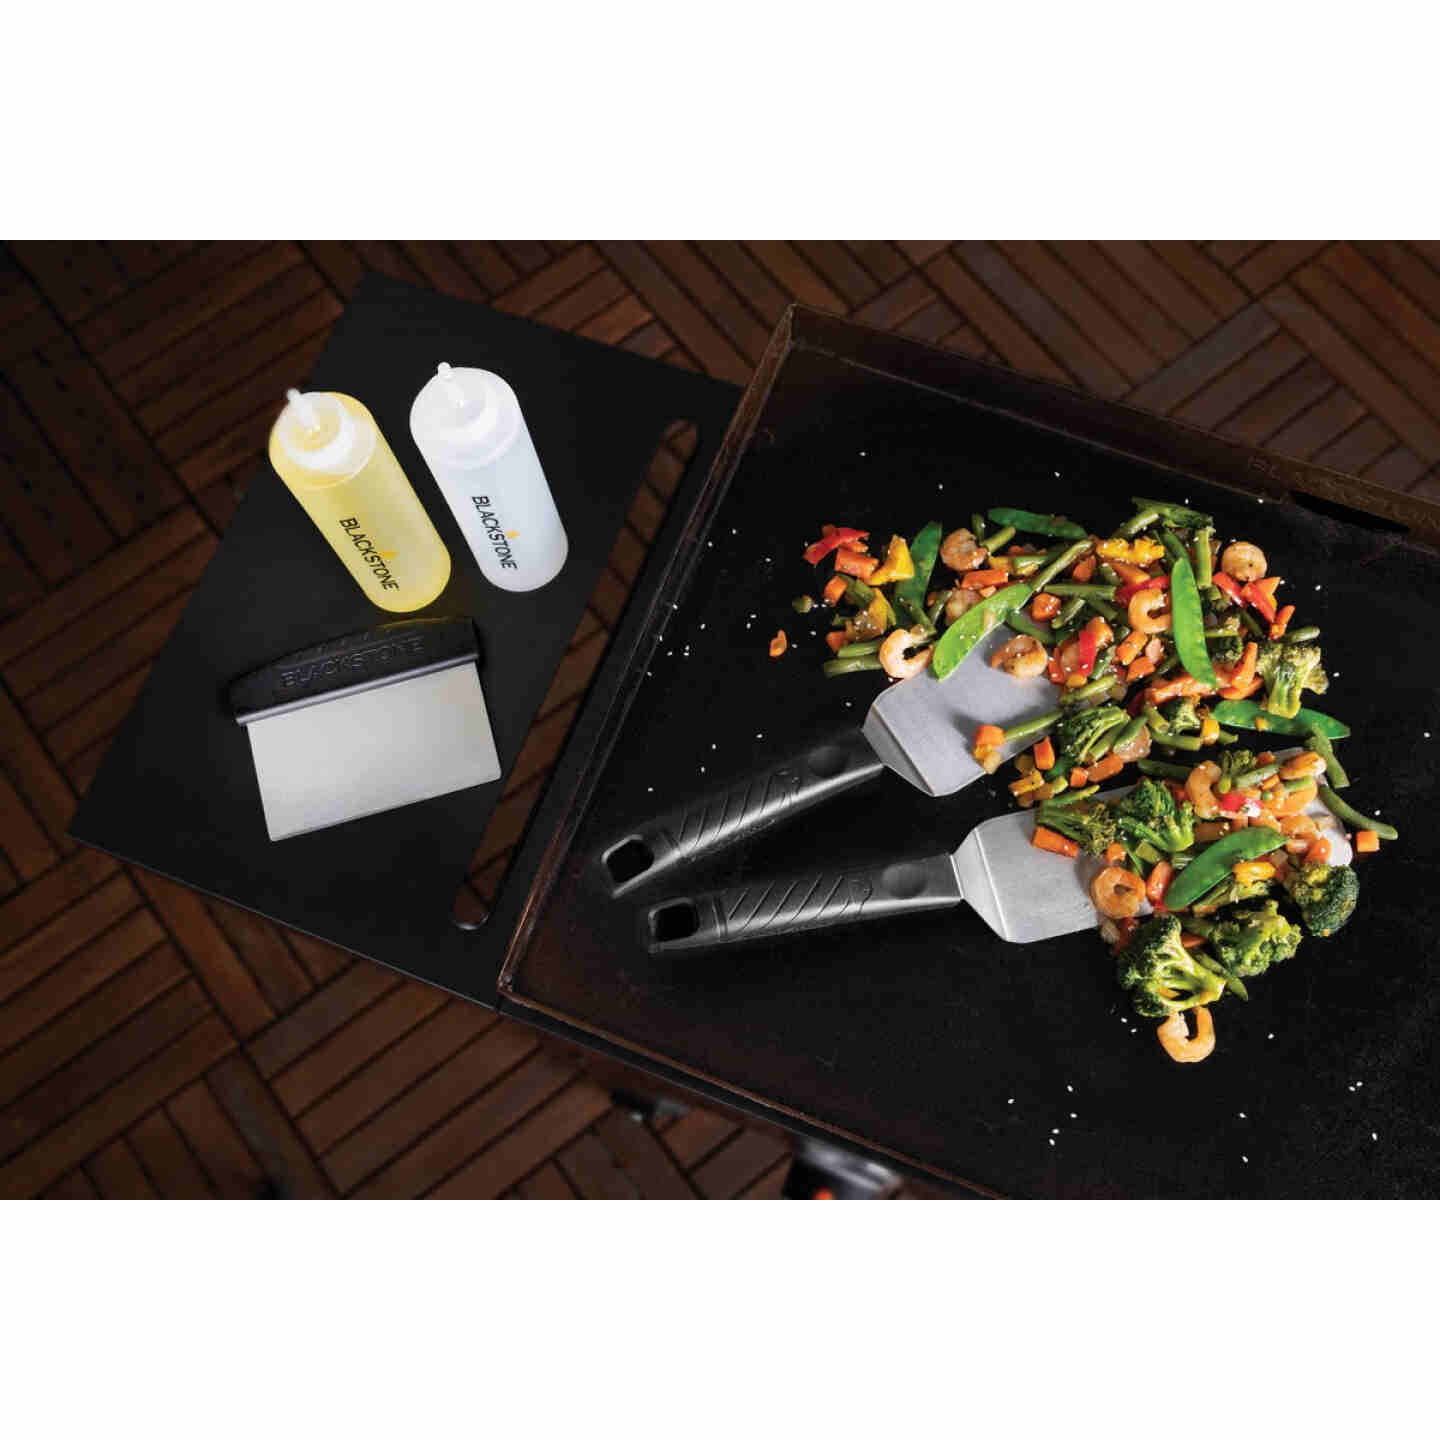 Blackstone Stainless Steel 6-Piece Griddle Tool Set Image 2